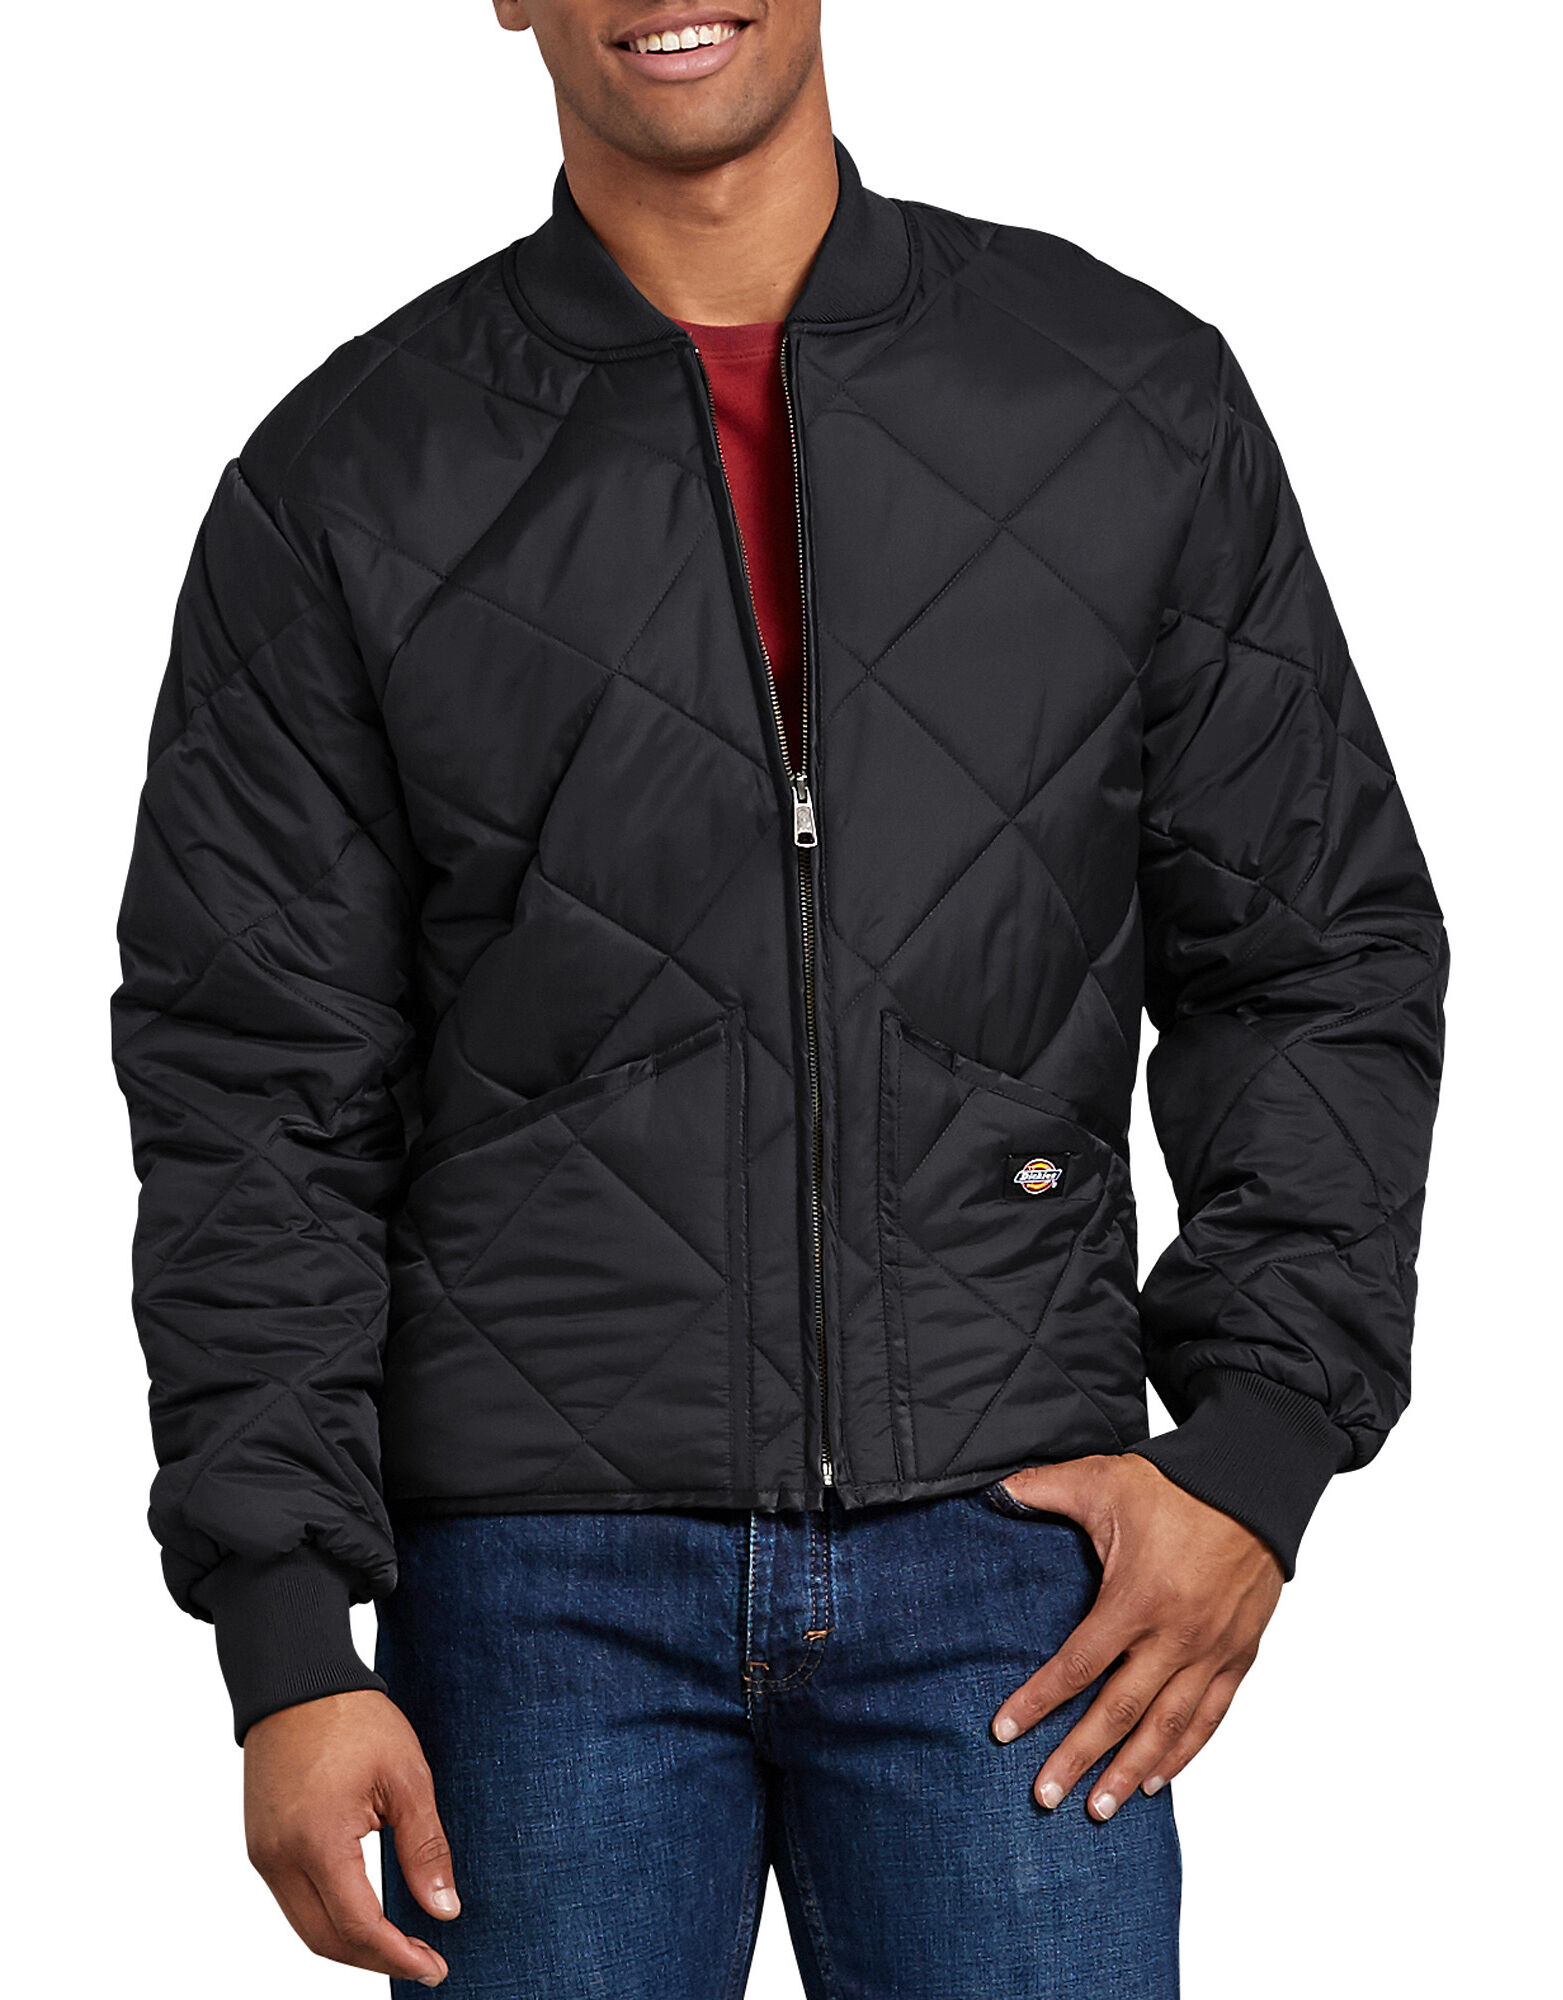 Mens Big &amp Tall Outerwear | Jackets Coats &amp Vests | Dickies